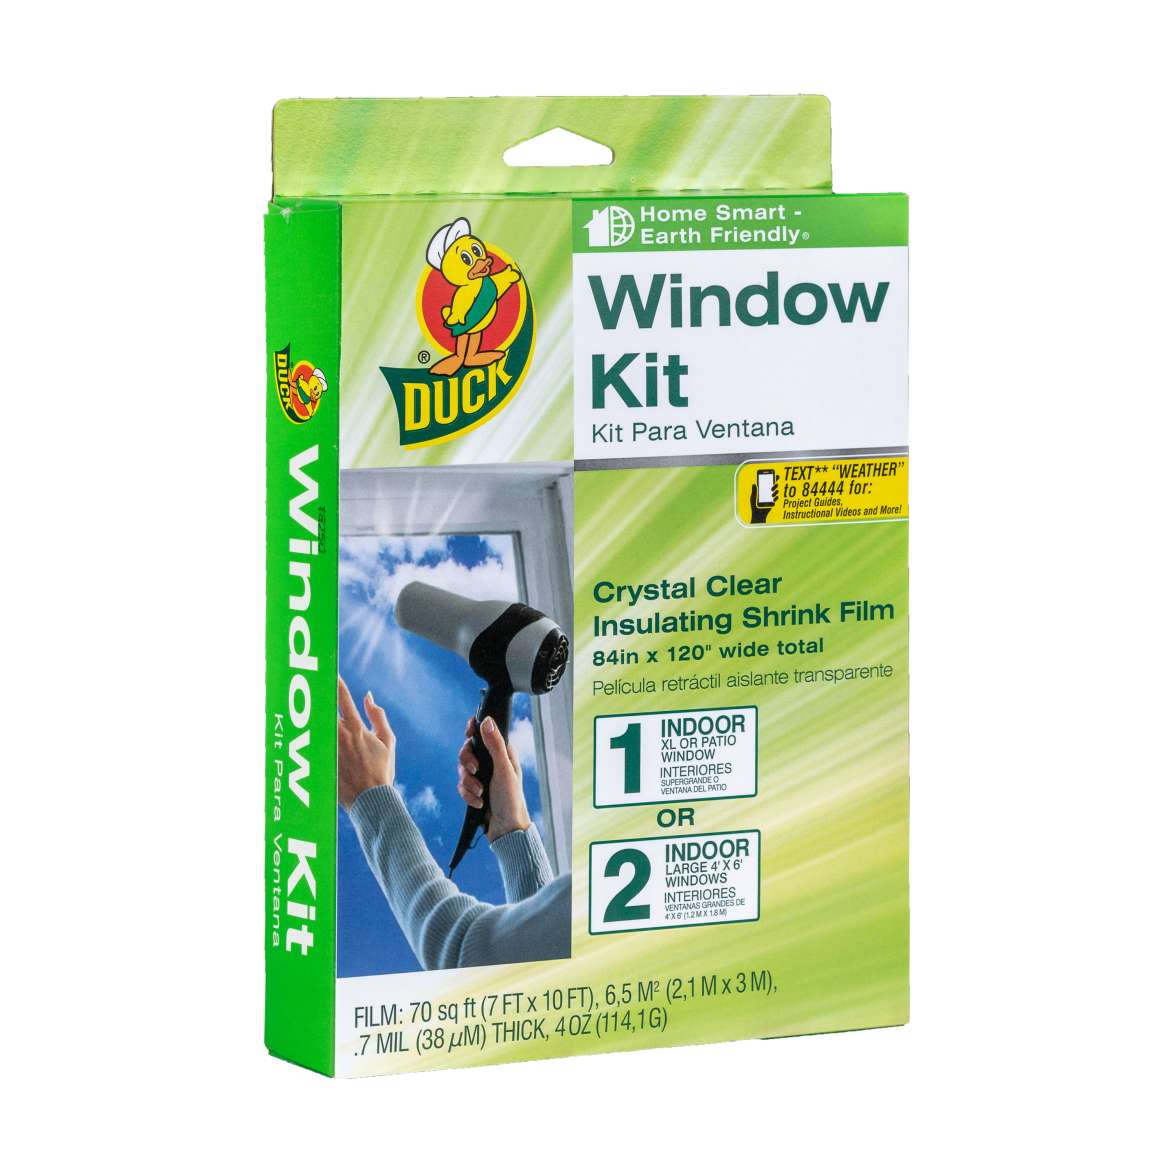 Shrink Film Window Insulation Kit Image